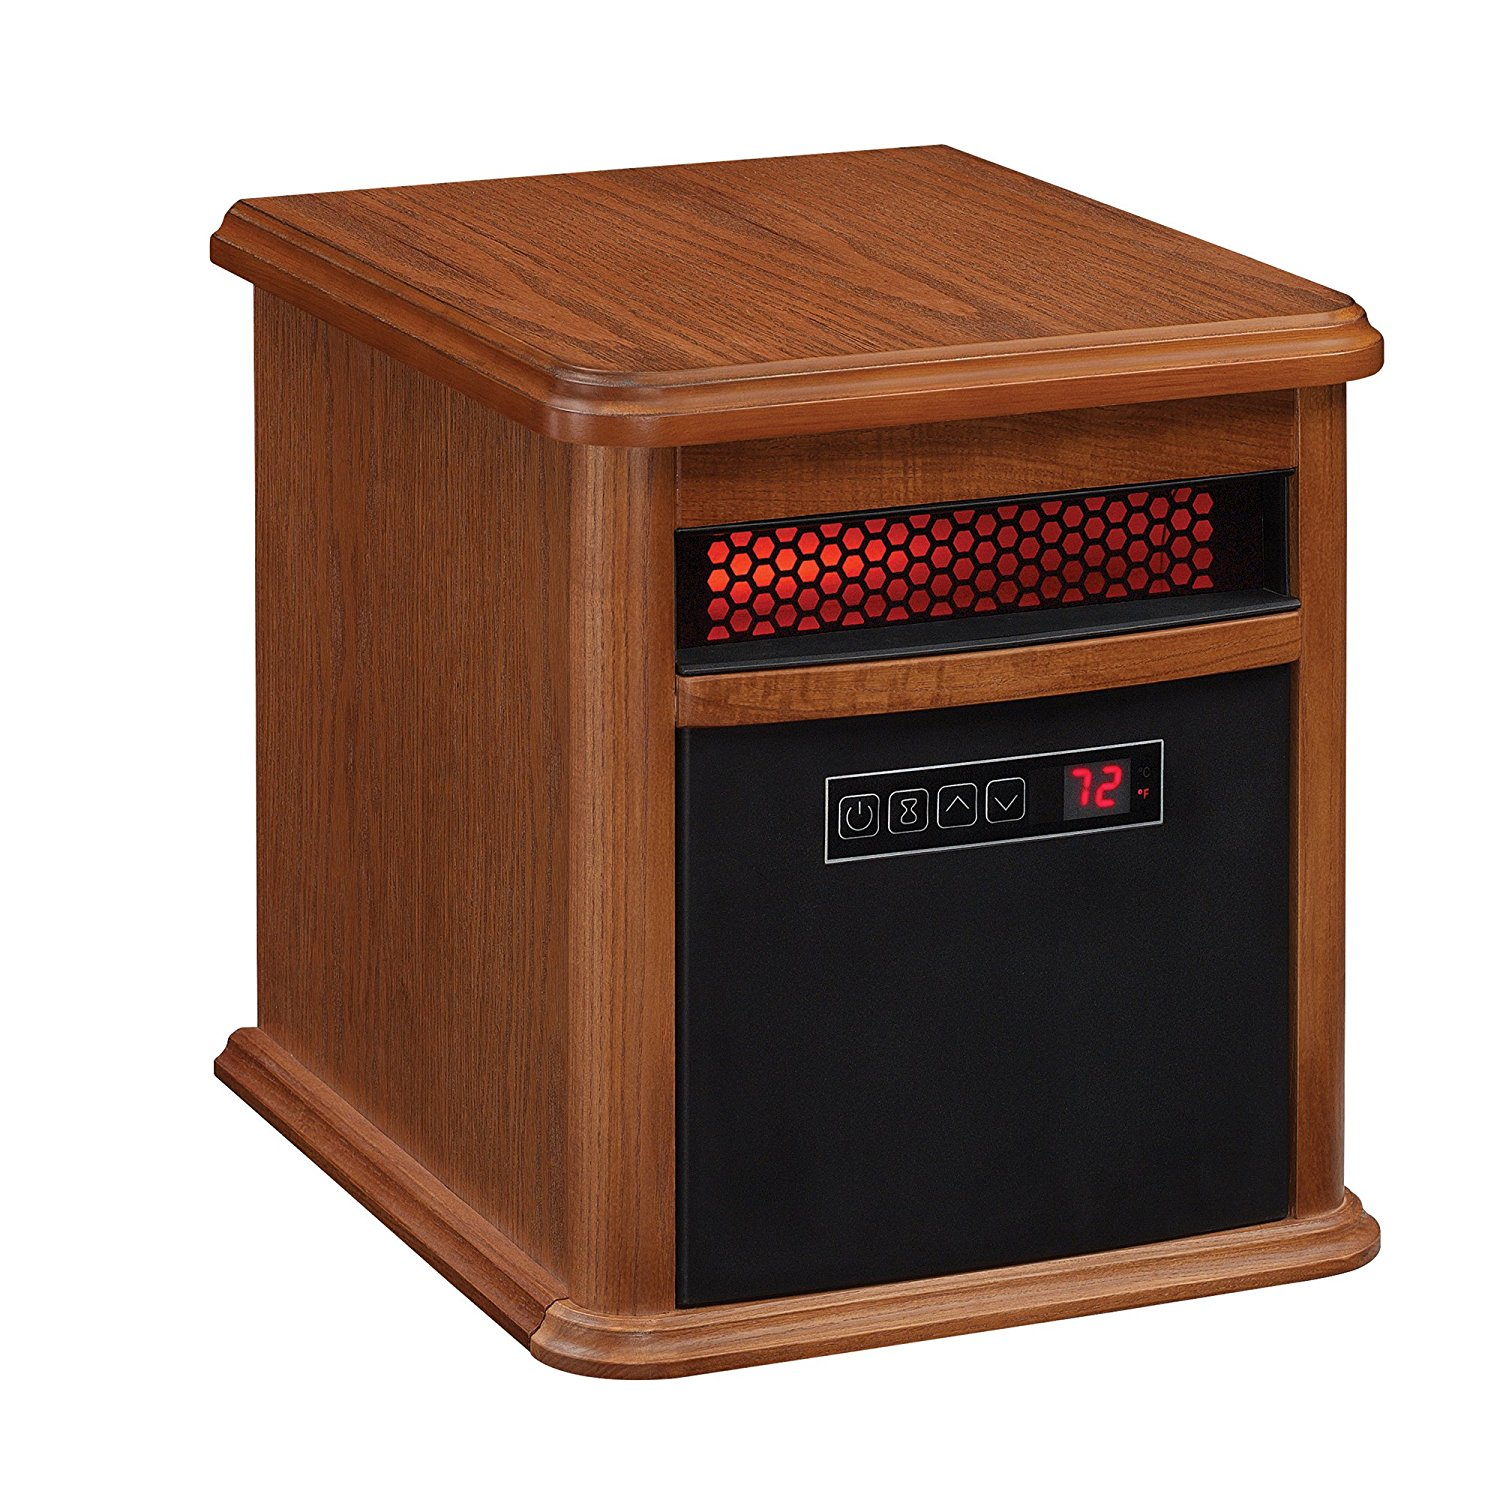 Duraflame Portable Electric Infrared Heater